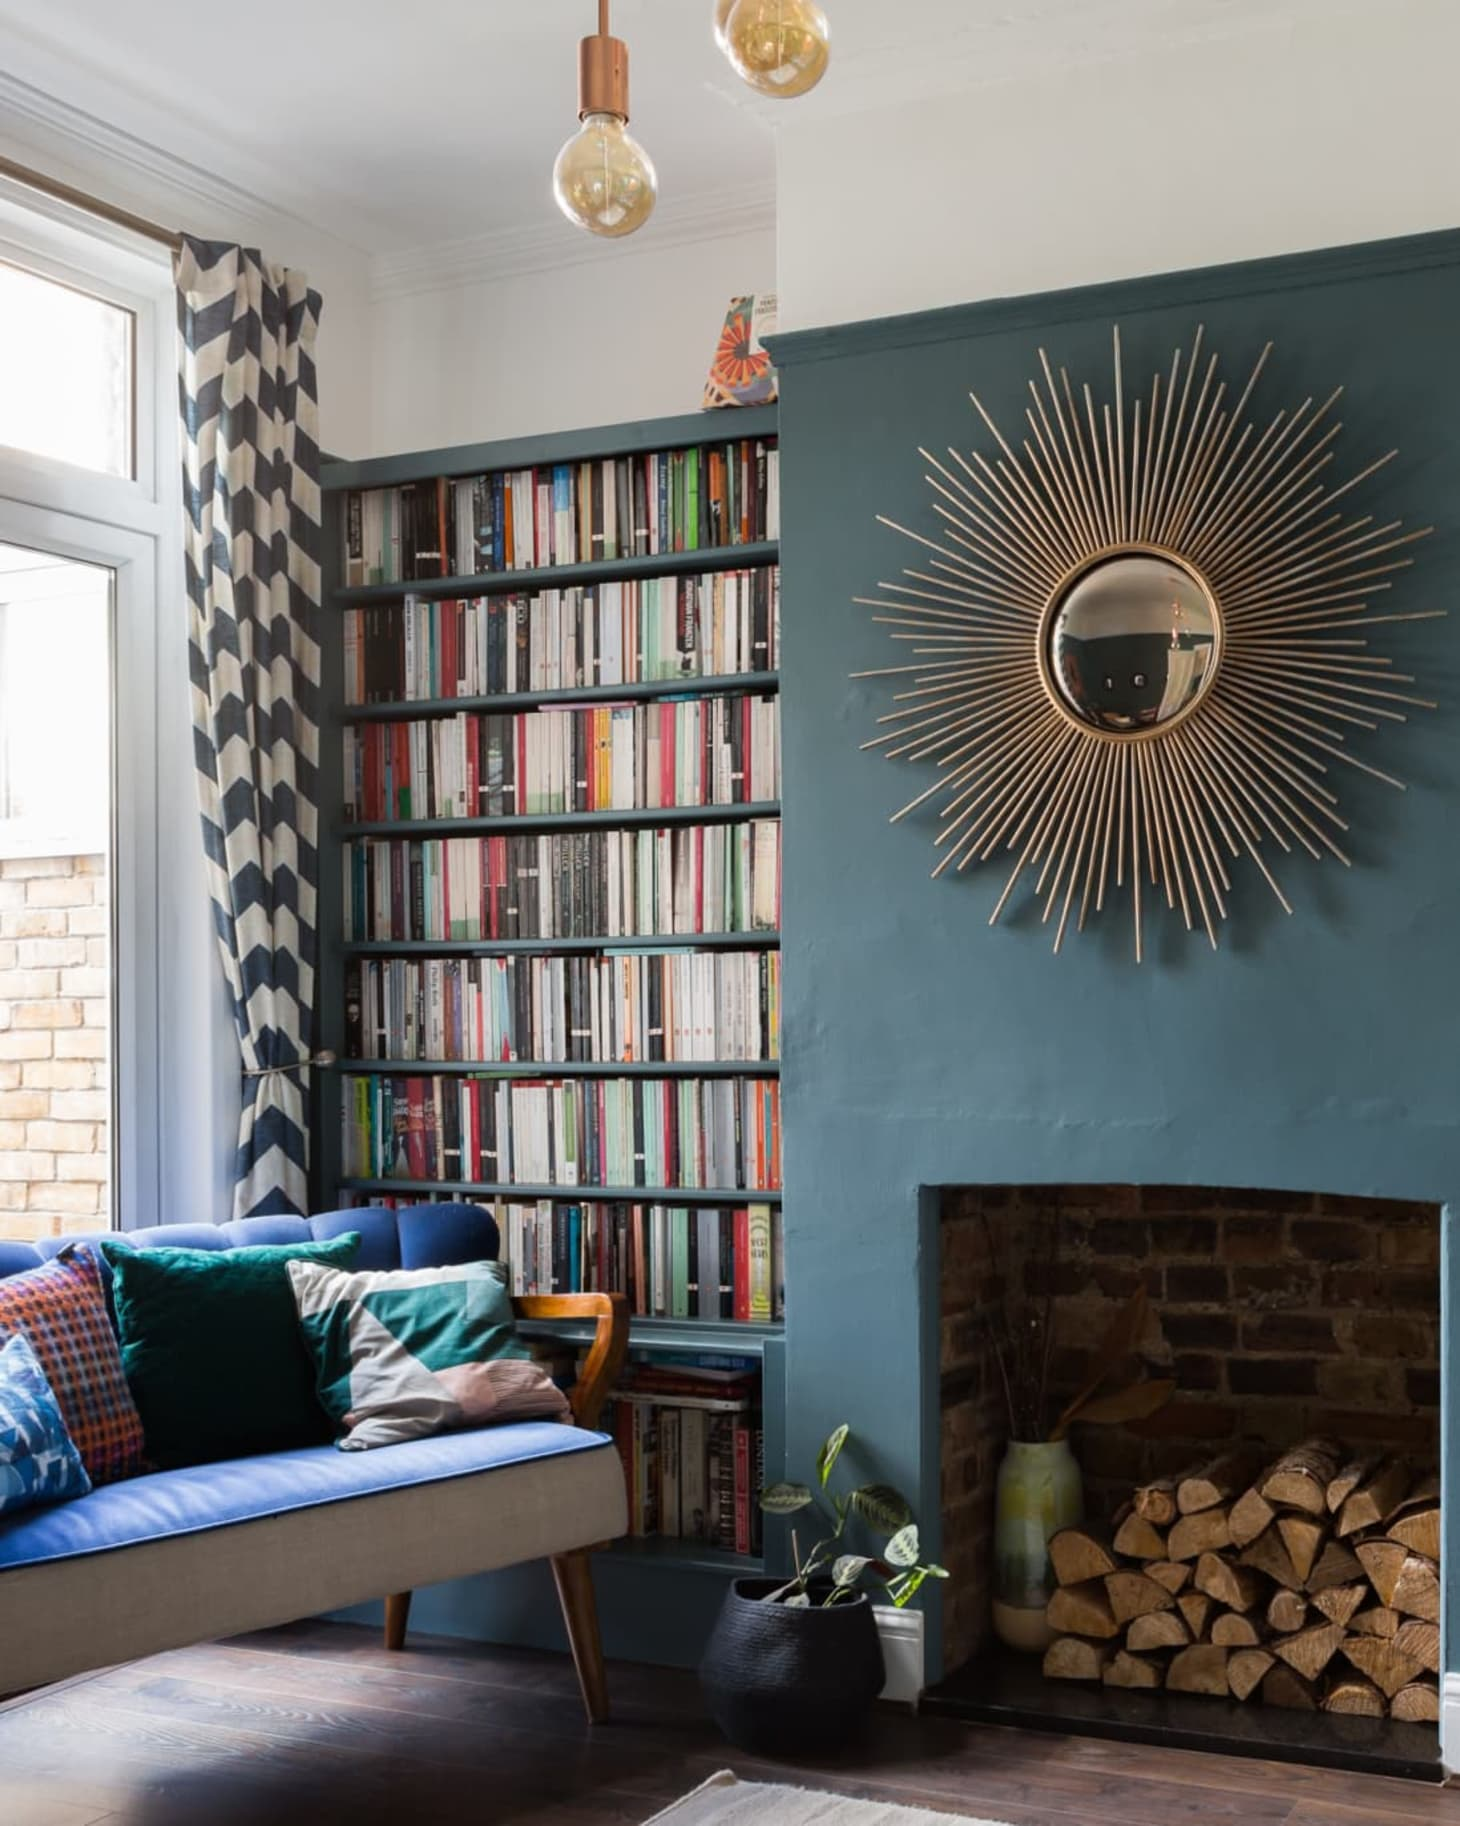 How To Decorate With Sage Green In Your Home